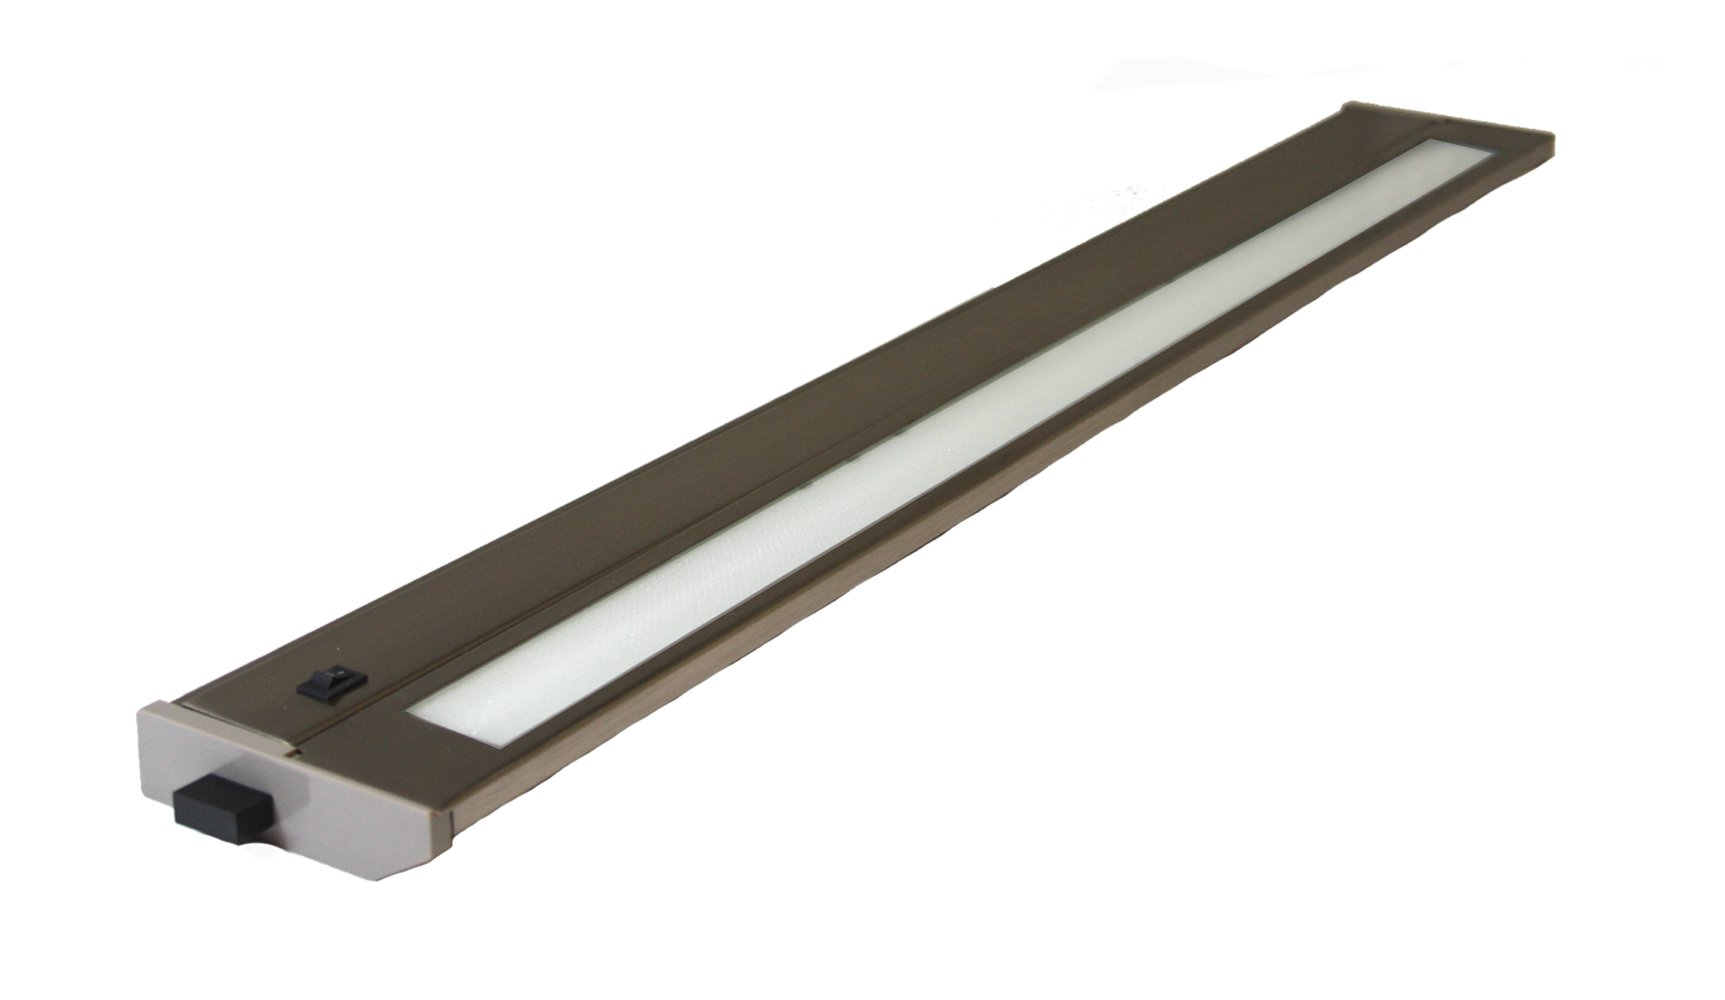 American Lighting 043T-28-BS Hardwire Fluorescent Under Cabinet Lighting, 18-Watt Lamp with On/Off Switch, 120-Volt, Brushed Steel, 28-Inch